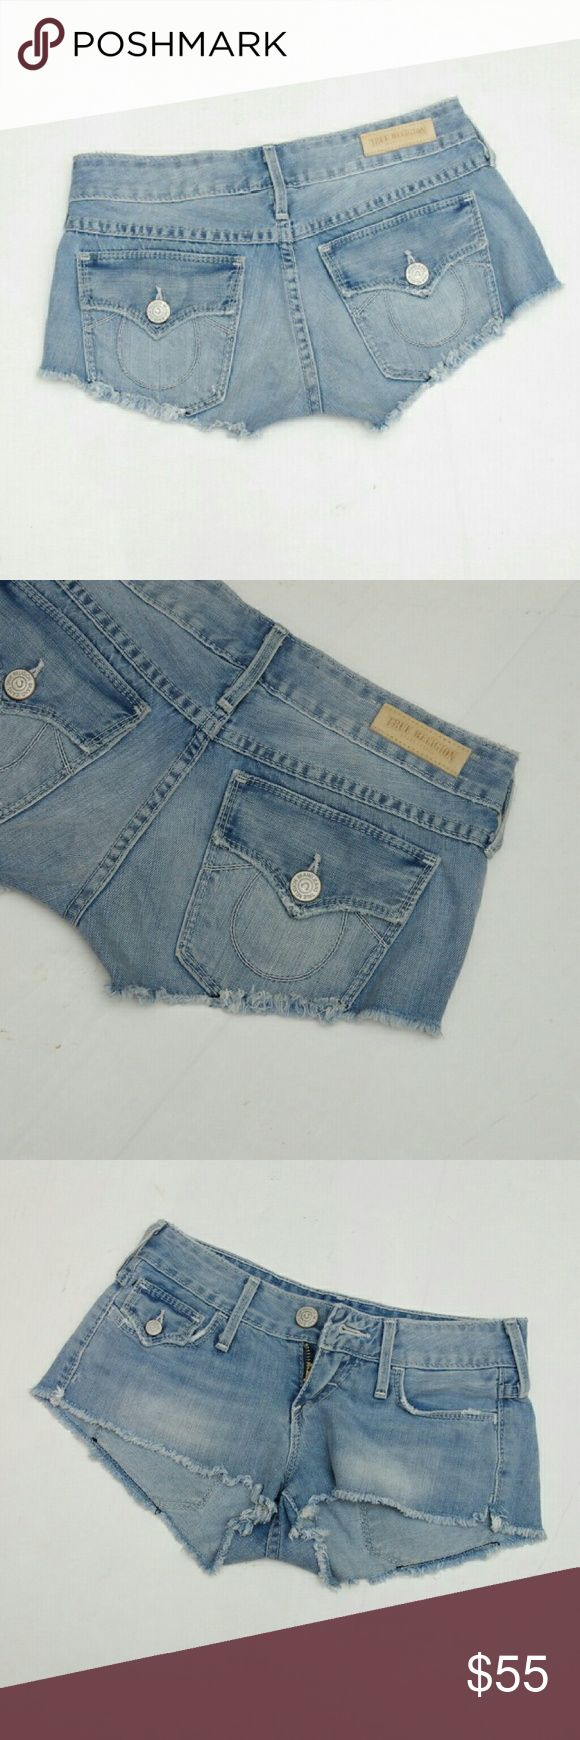 "True Religion Joey Daisy Duke Short Shorts Light was True Religion Daisy Duke cut off short shorts.? Excellent condition.? Size 23 (like a 00).  Measurements:? 14"" across waist, flat? 7"" rise? 2"" inseam True Religion Shorts Jean Shorts"